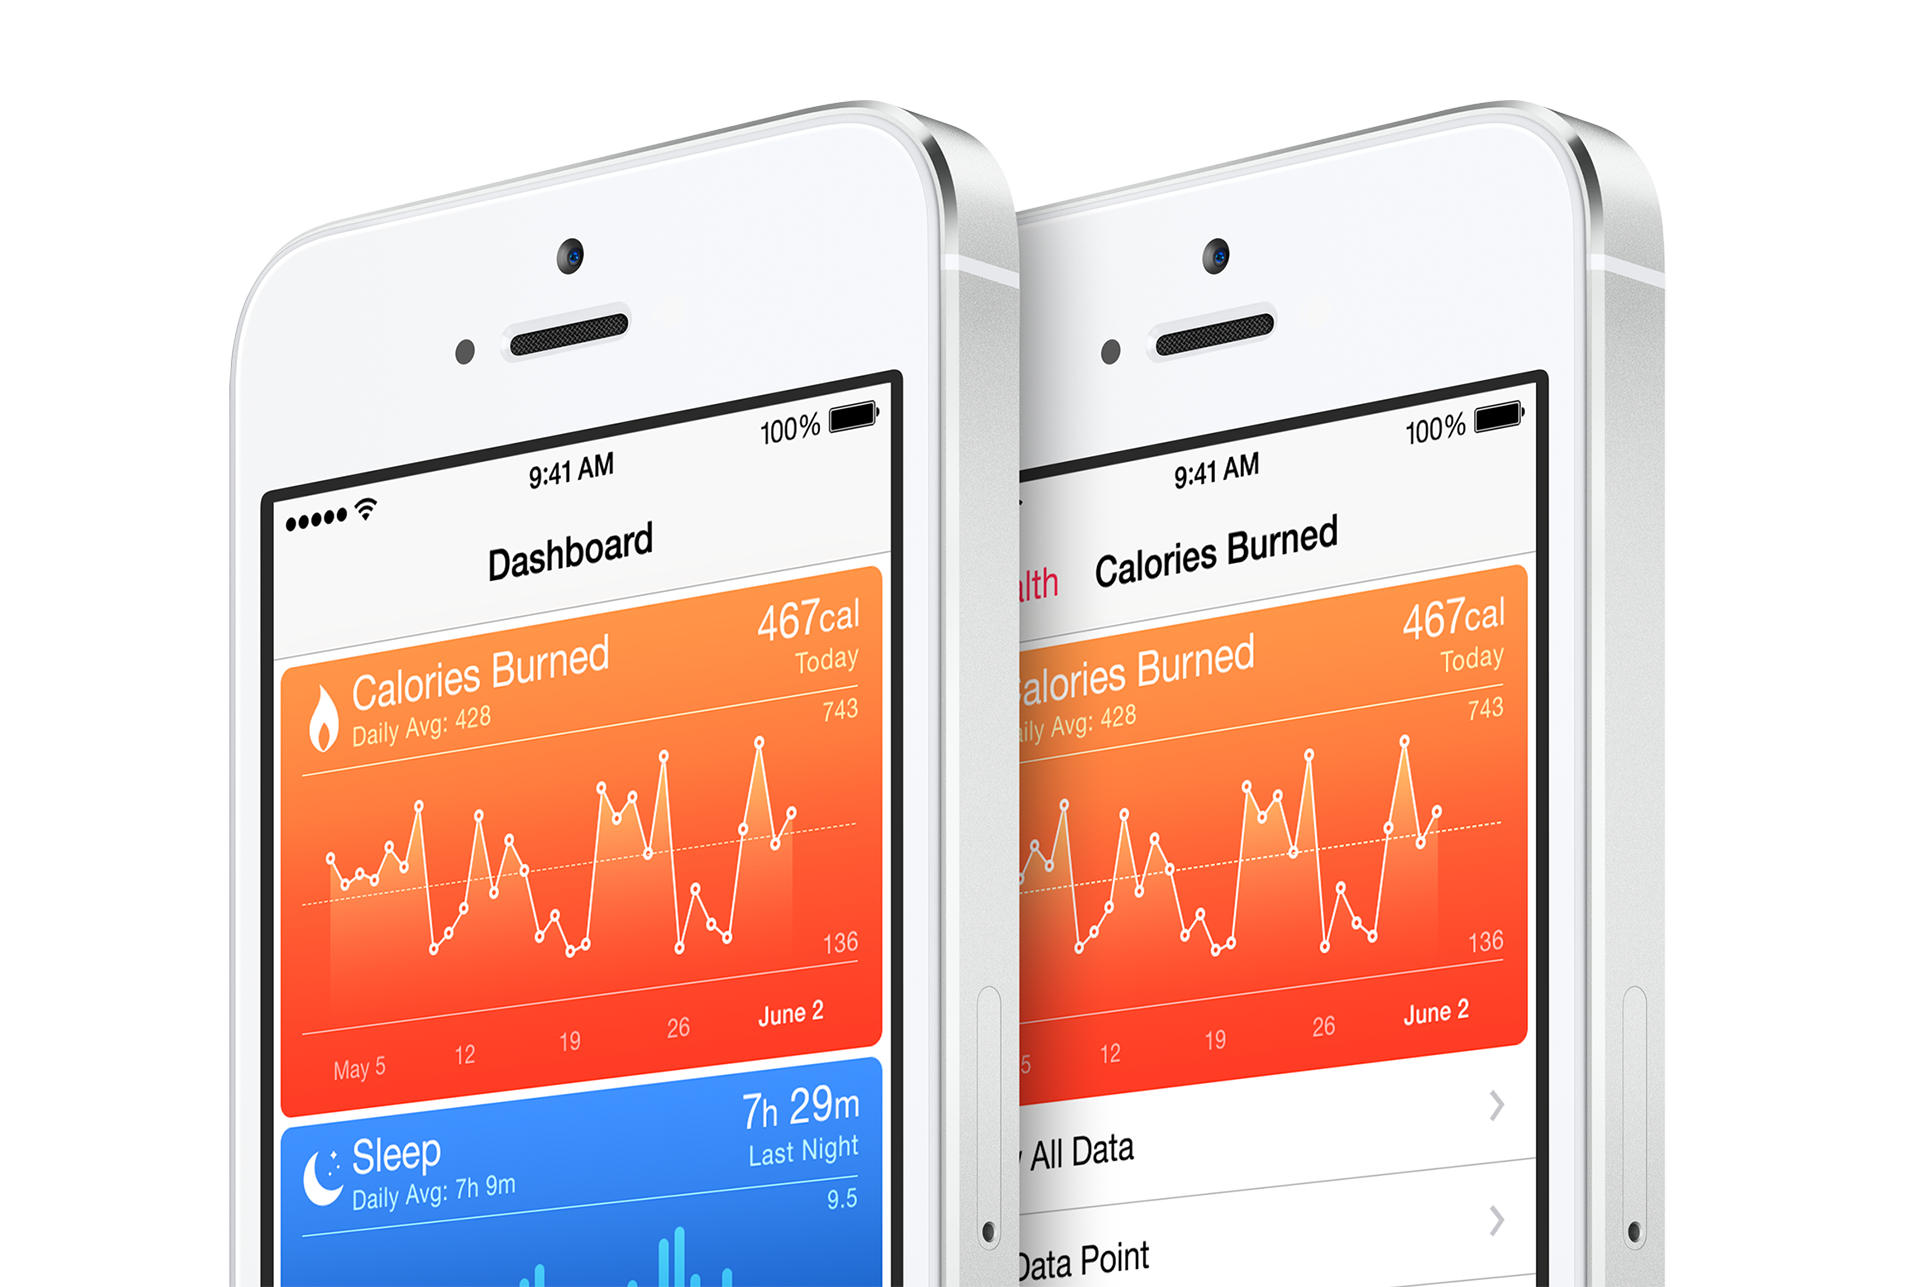 Apple acquired Gliimpse, a personal health data startup ...